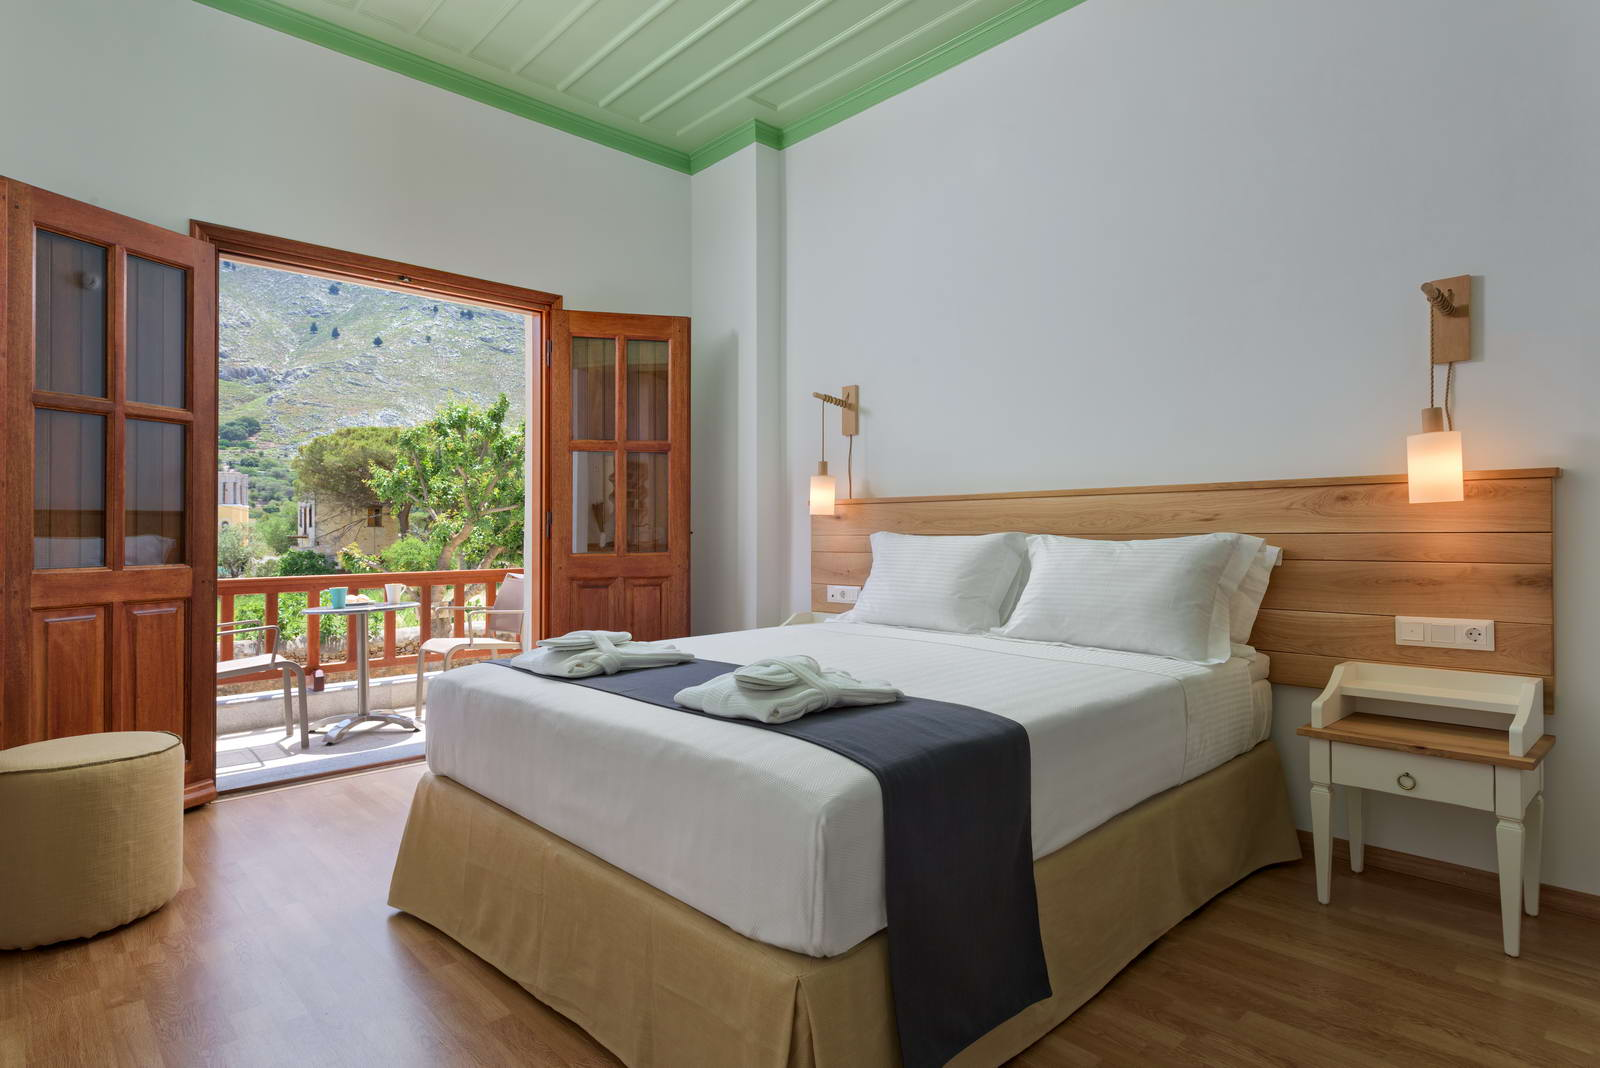 asymi residences symi greece dsuperior suite 1